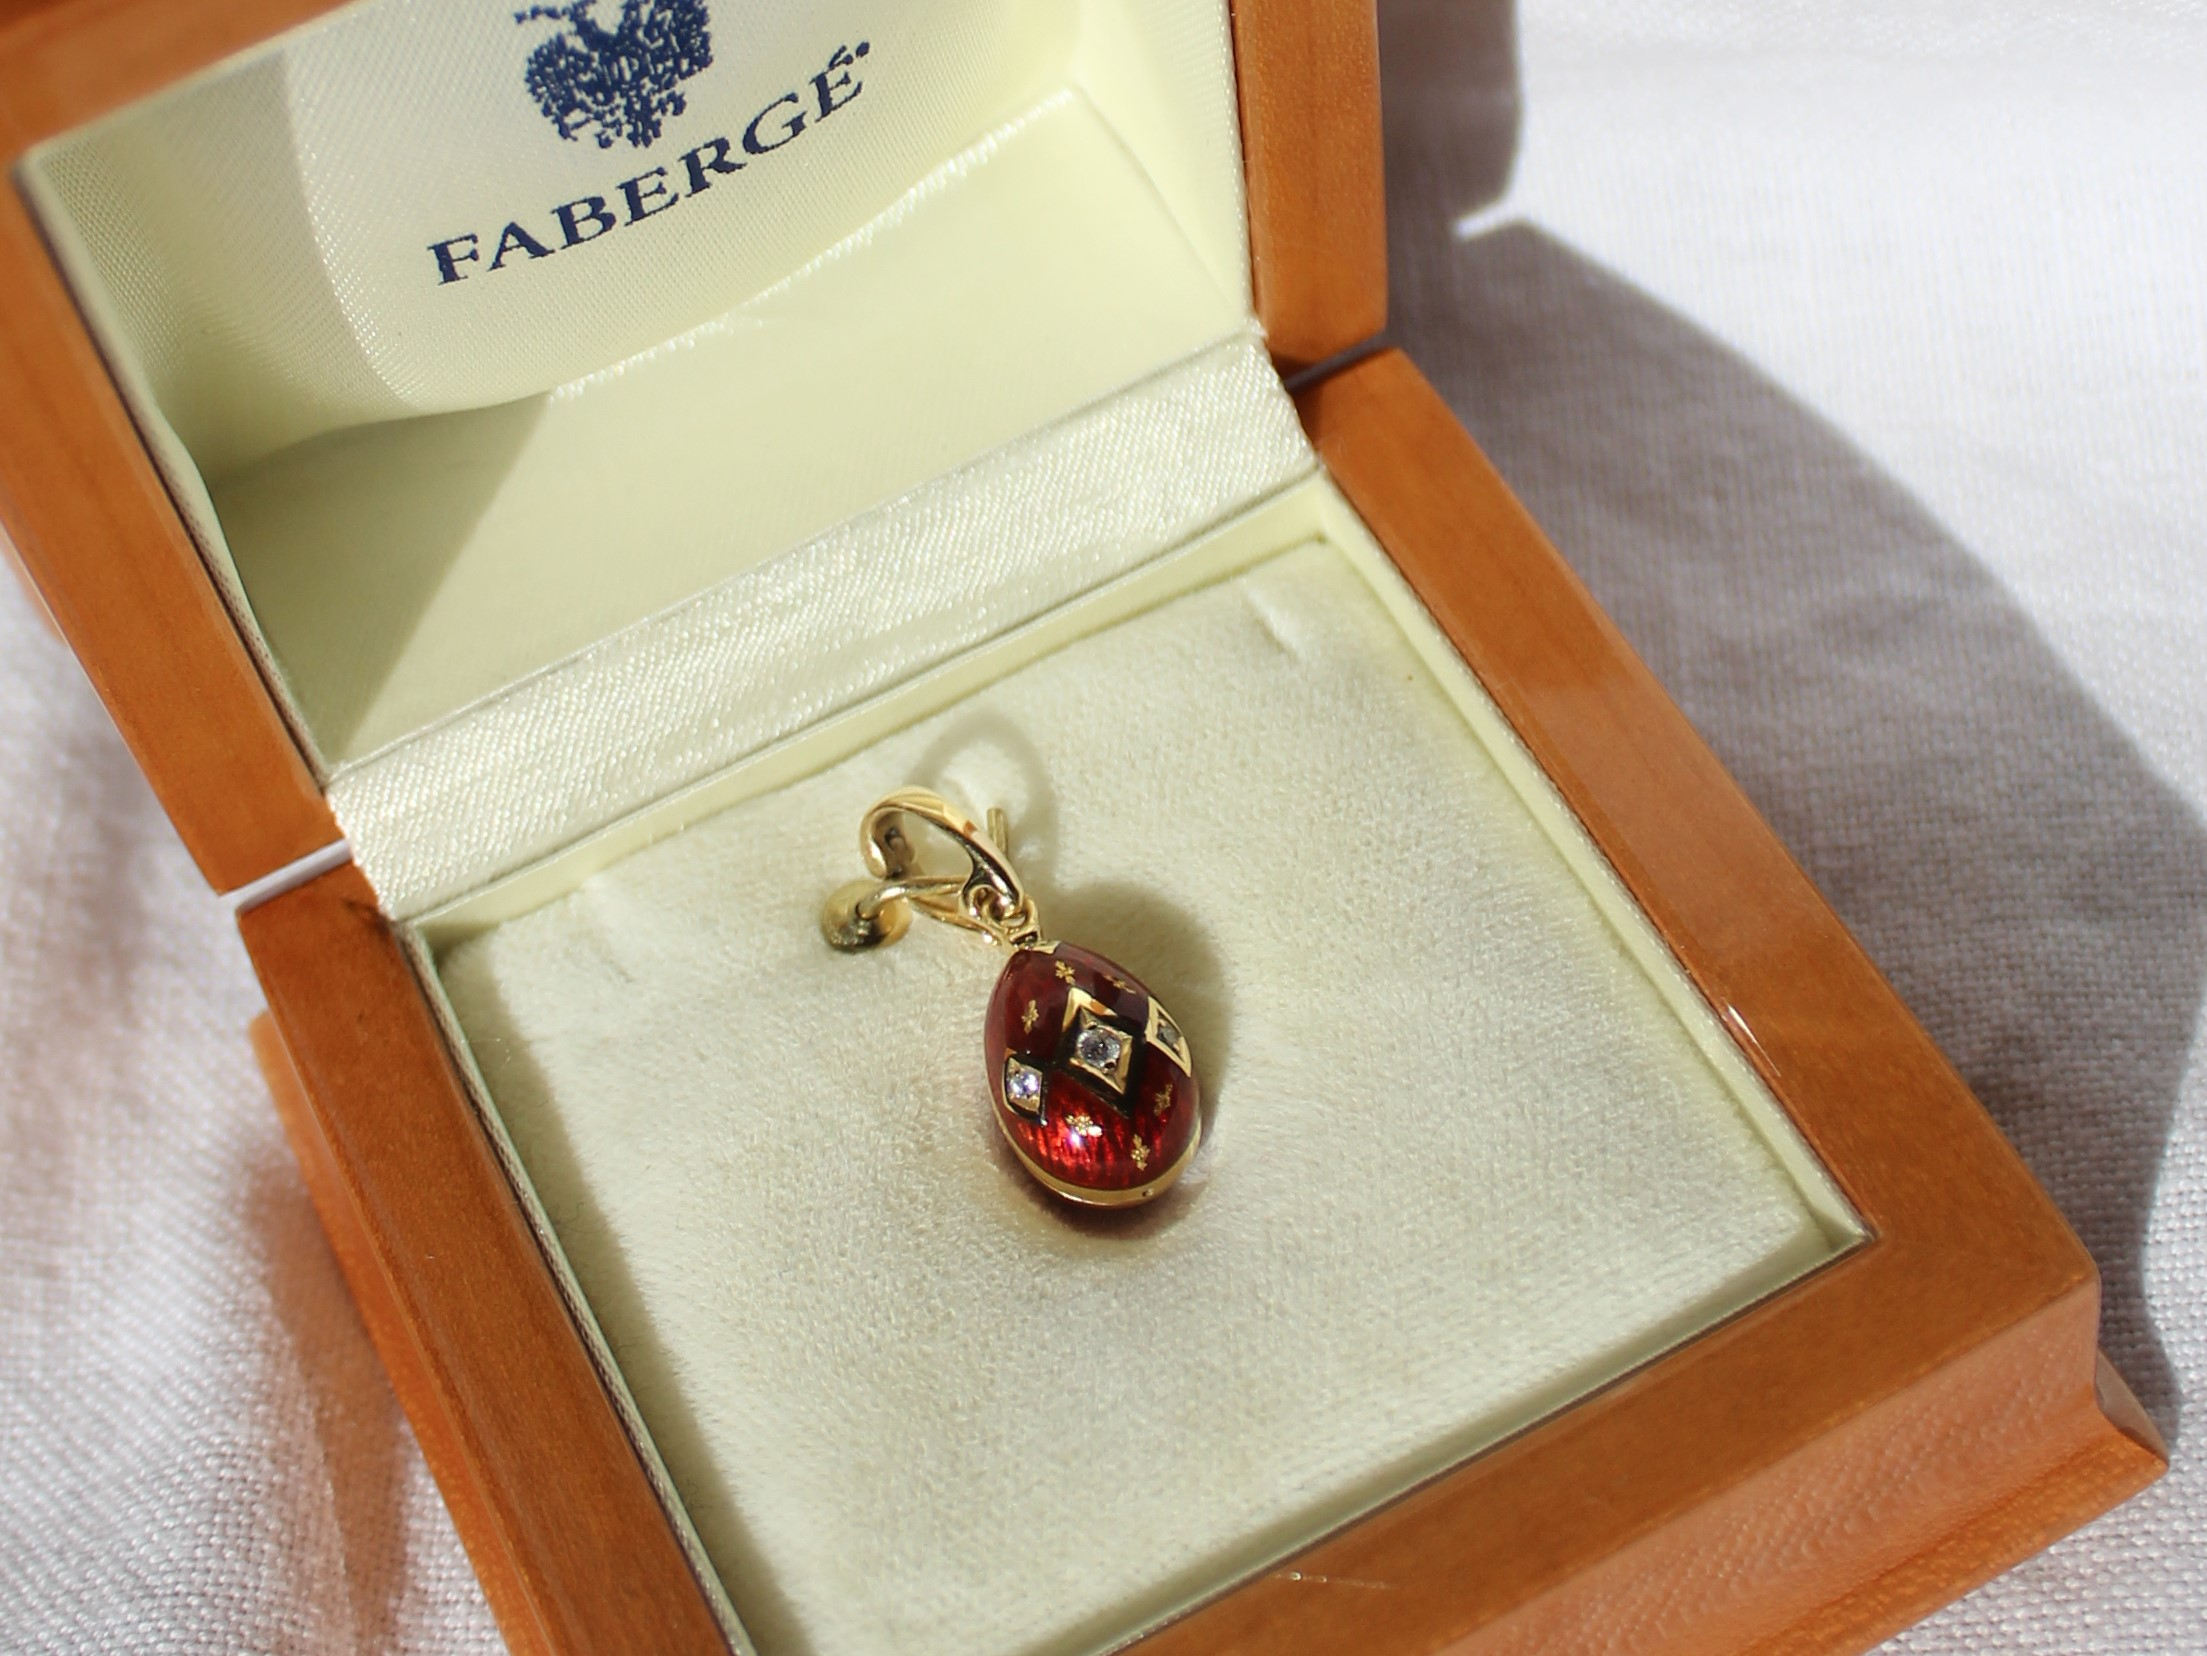 Lot 148 - Estimates: £300 - 500 - Victor Mayer for Faberge an 18ct gold, diamond and red enamel egg shaped pendant, set with three diamonds totally o.o6 of a carat, No.380/500, with certificate of authenticity and boxes